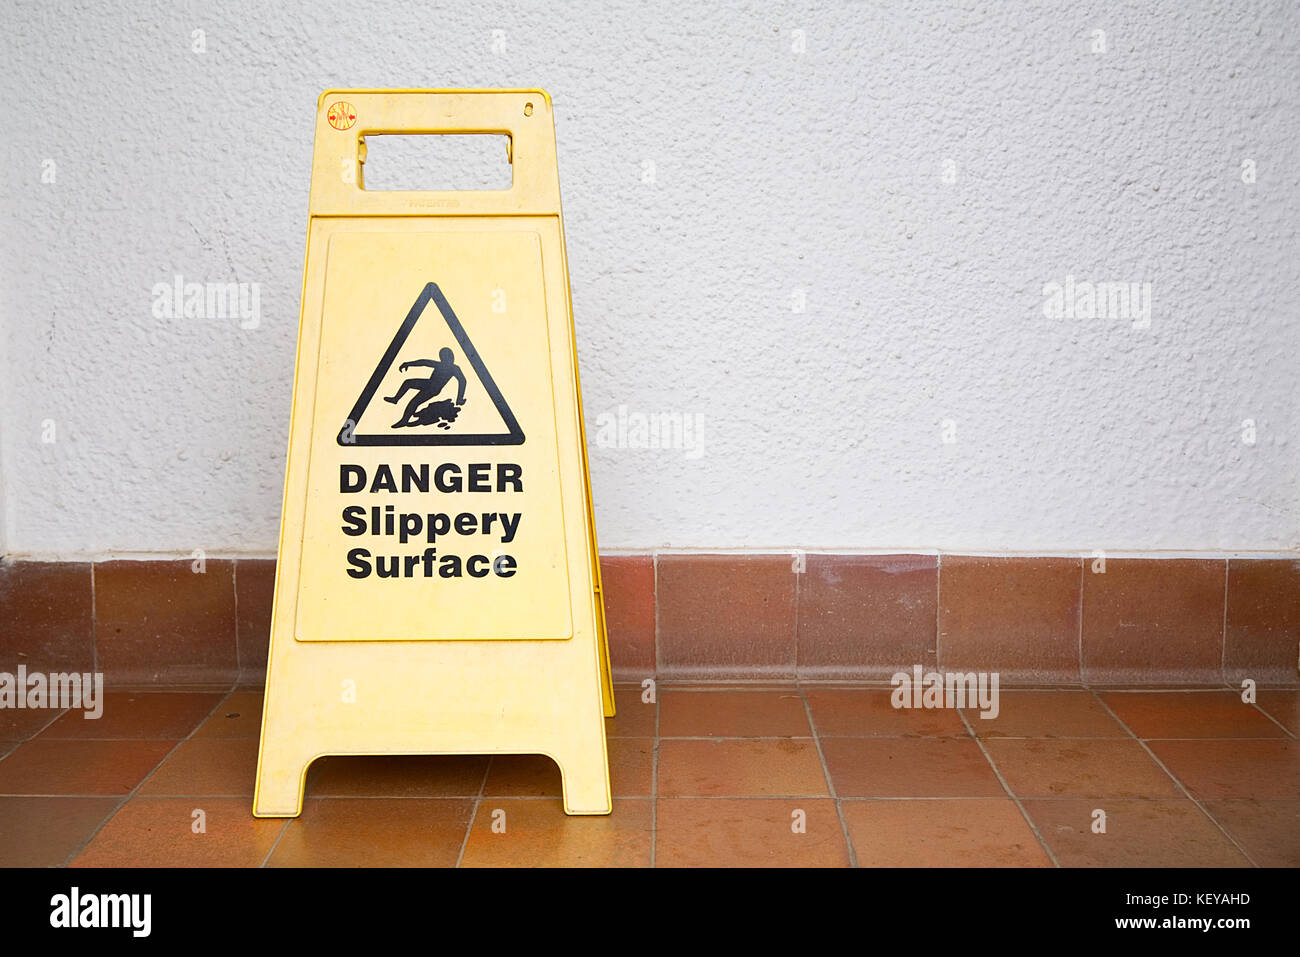 Yellow danger slippery surface sign on tiled floor on the left hand side of the image - Stock Image